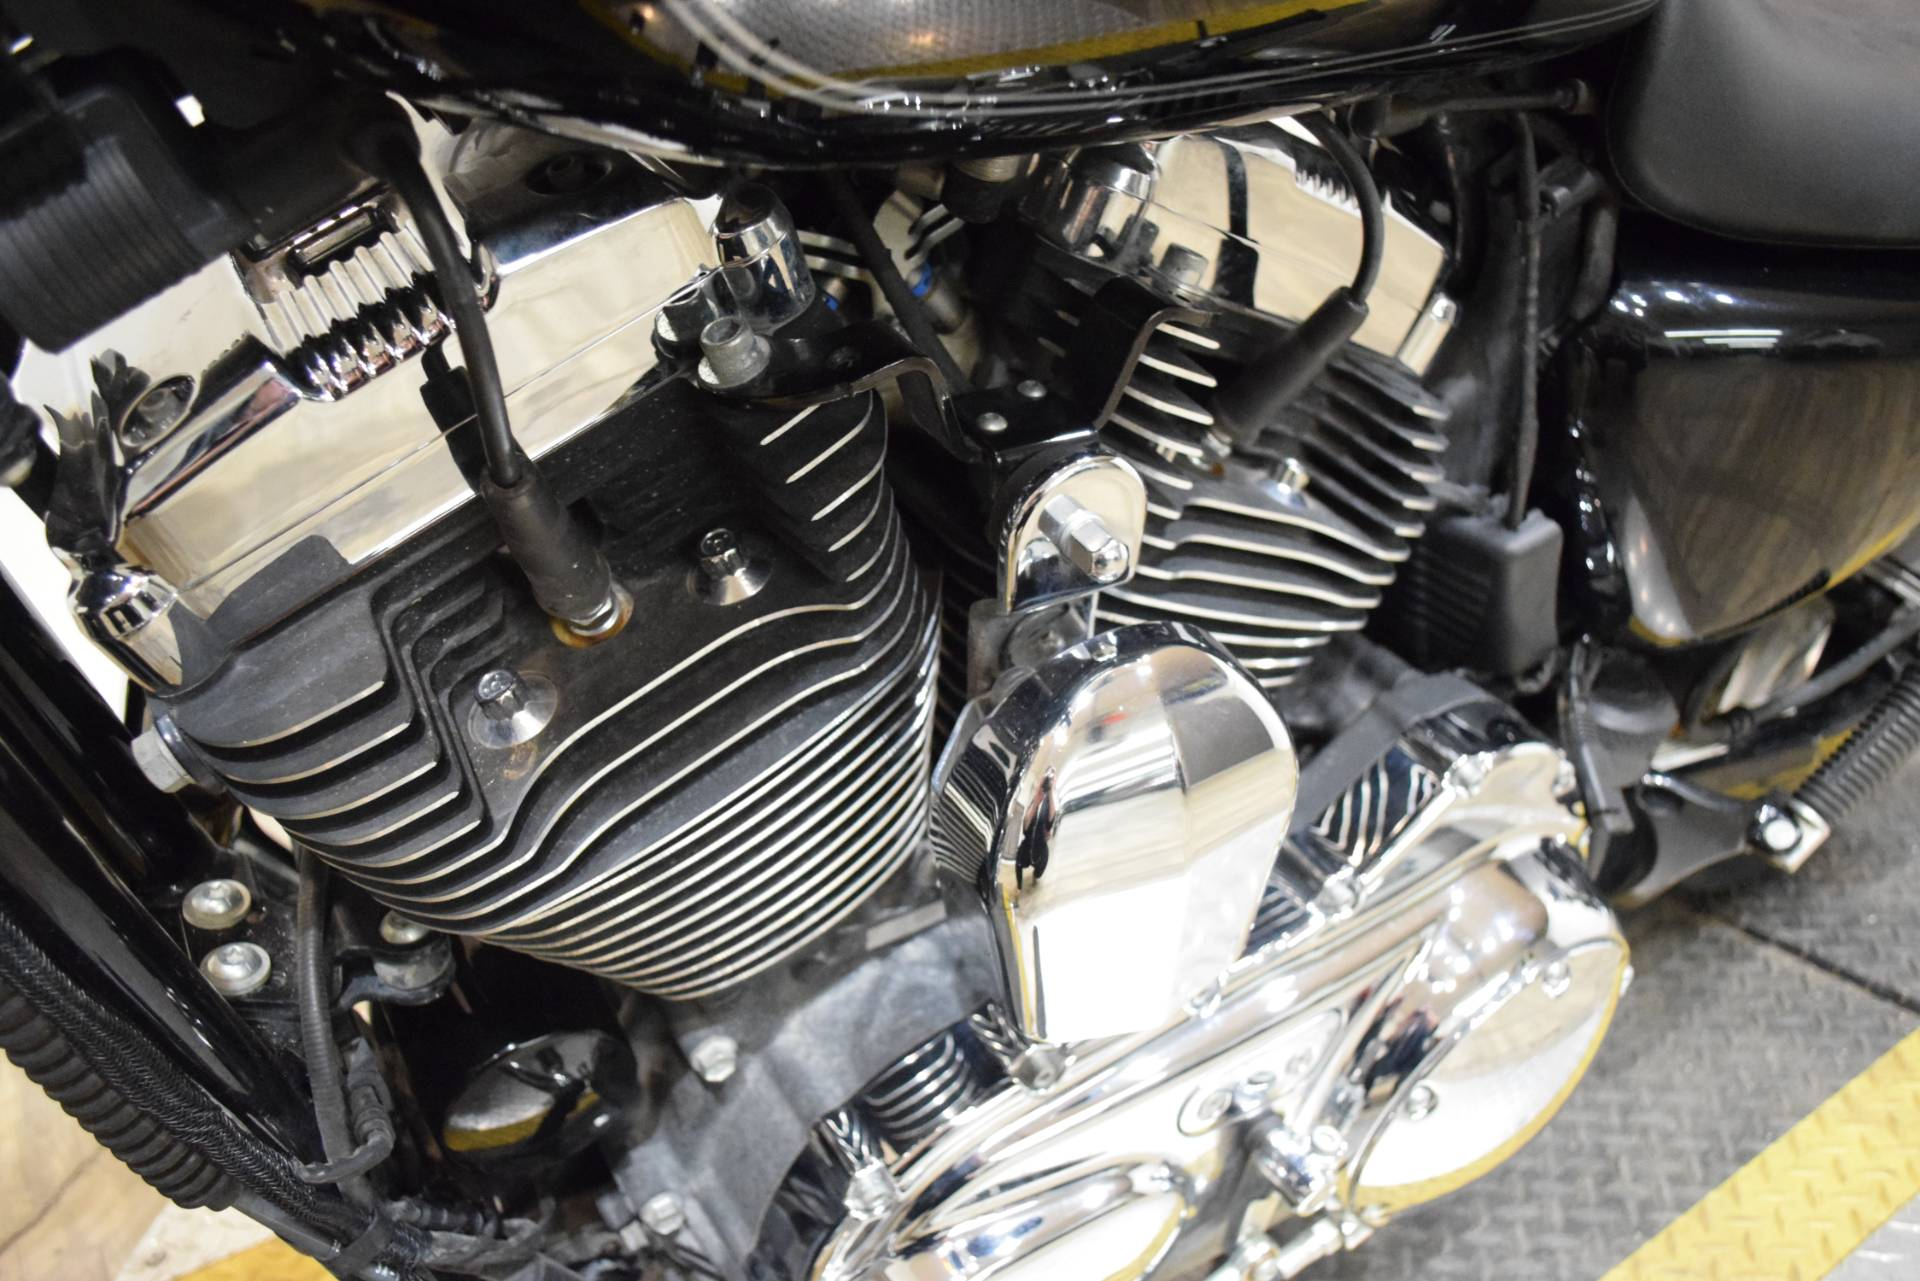 2013 Harley-Davidson Sportster® 1200 Custom in Wauconda, Illinois - Photo 19